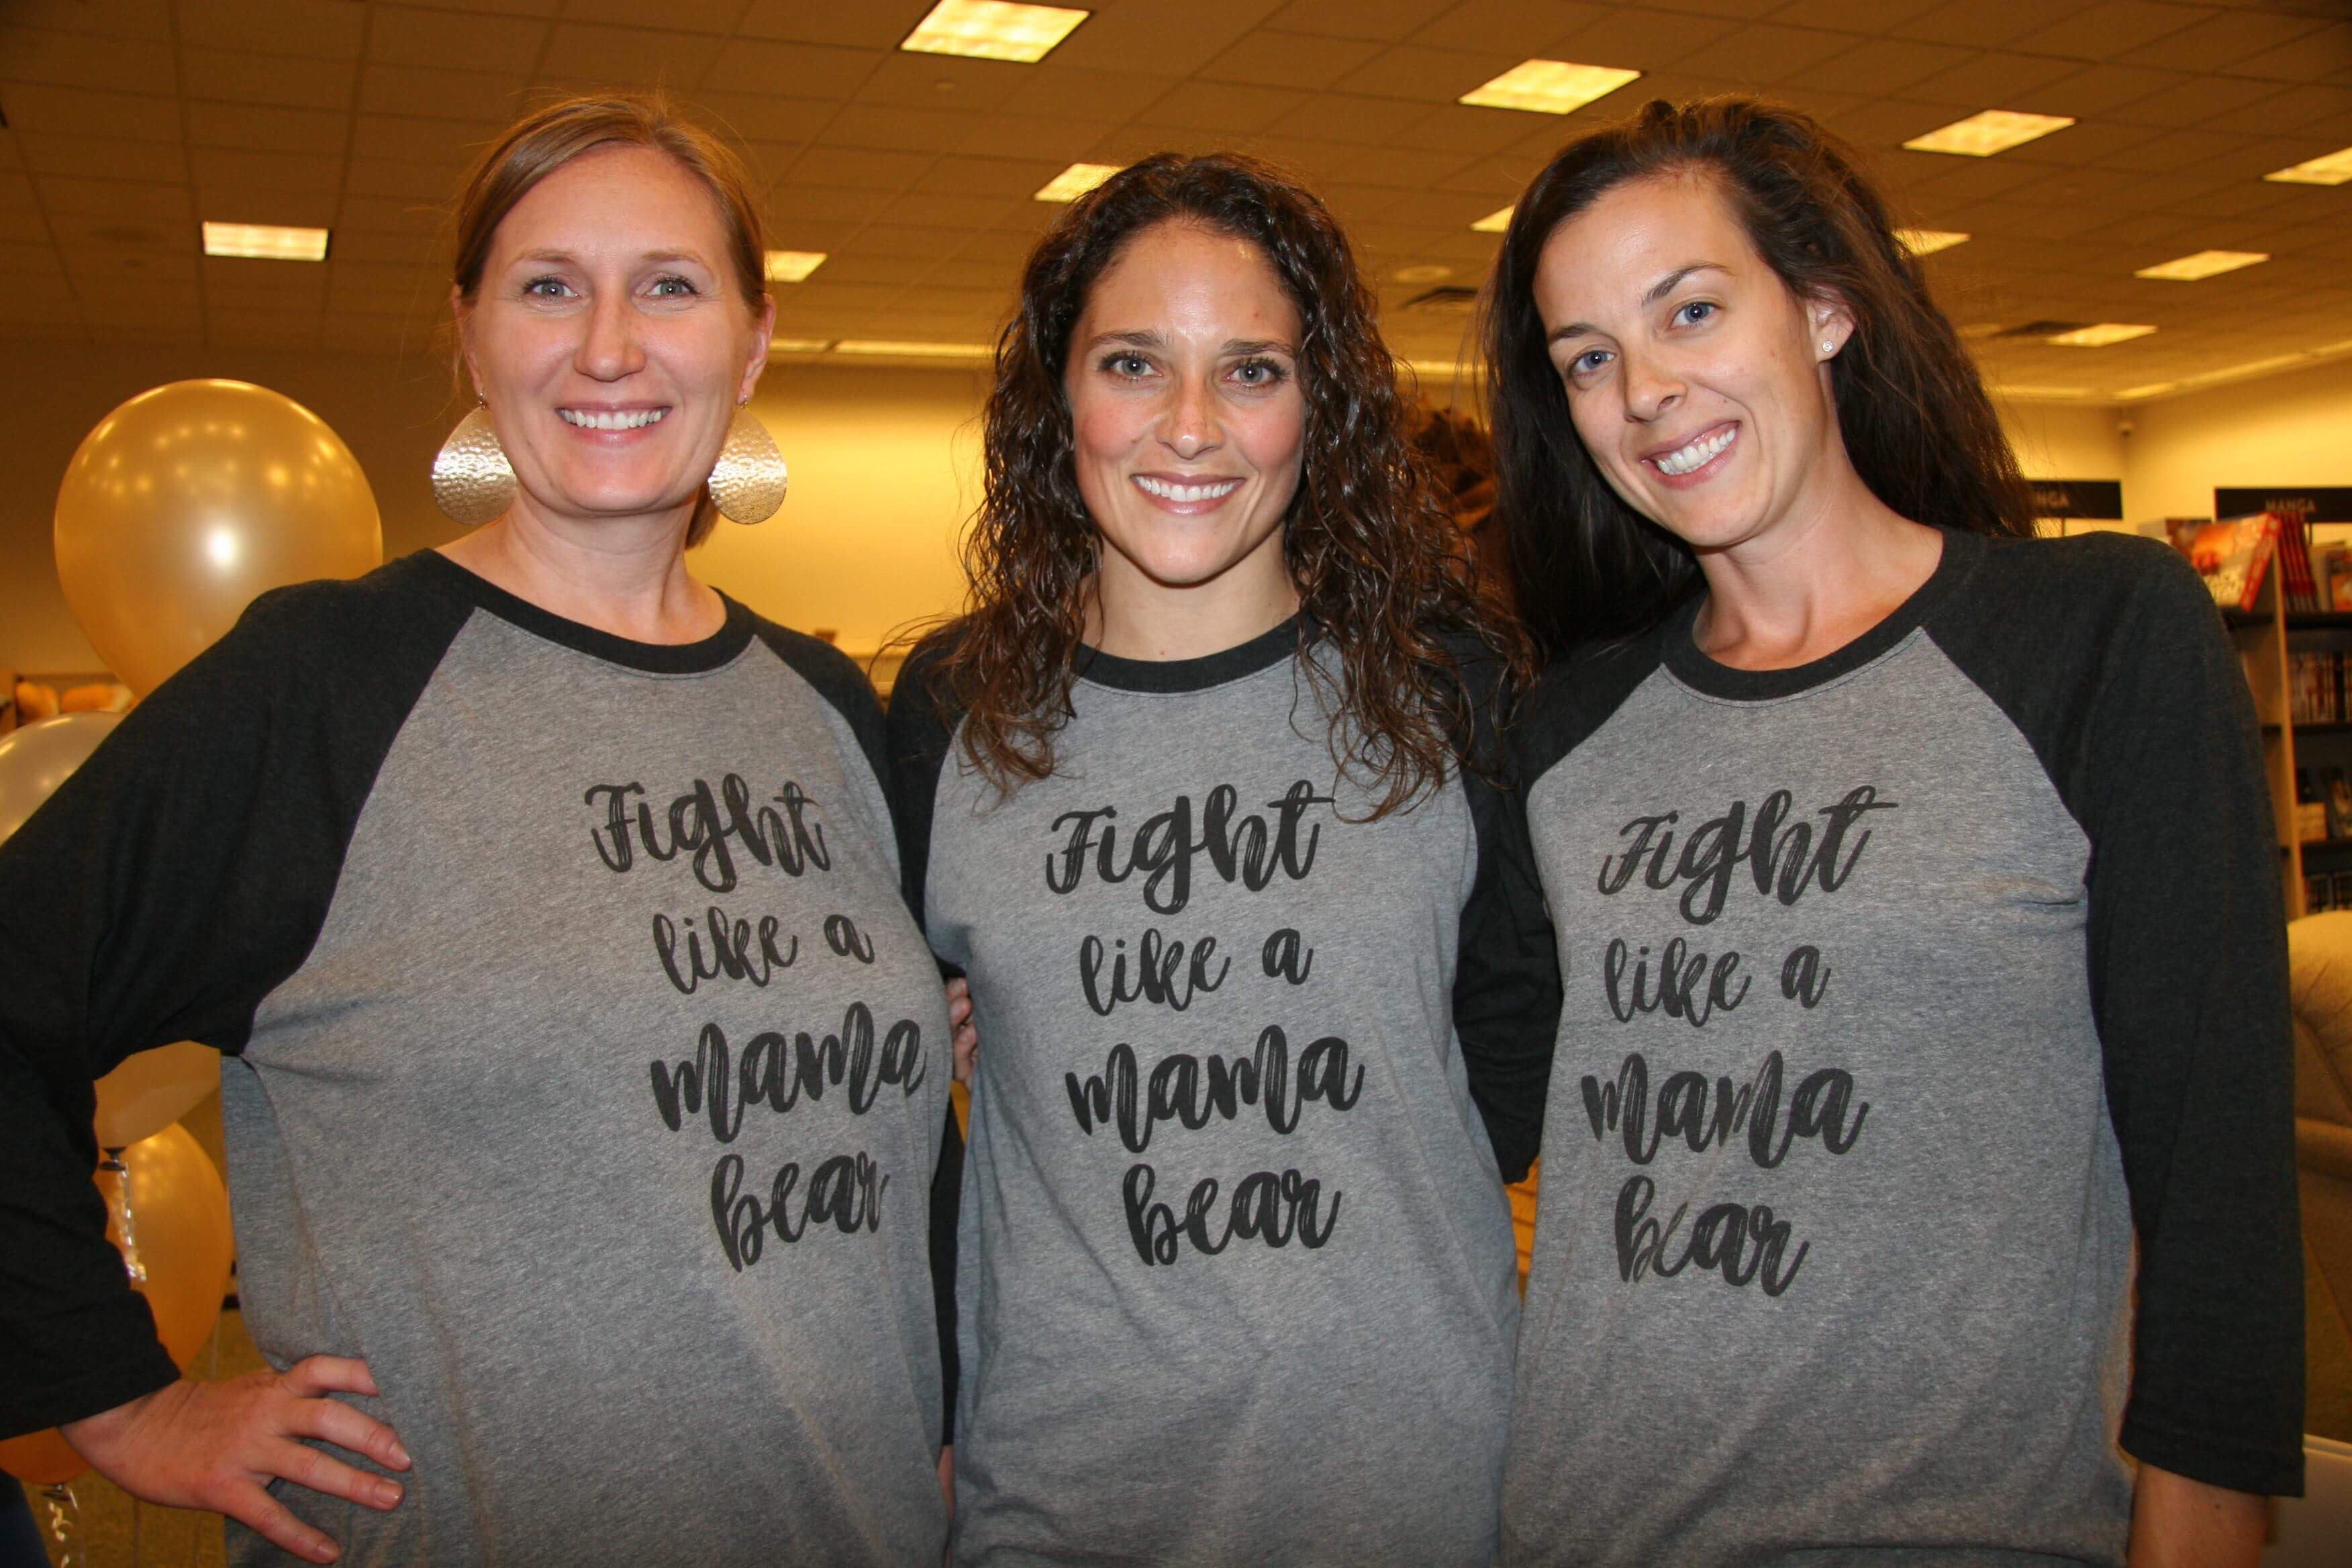 OKHPR members showing their fight like a mama bear shirts